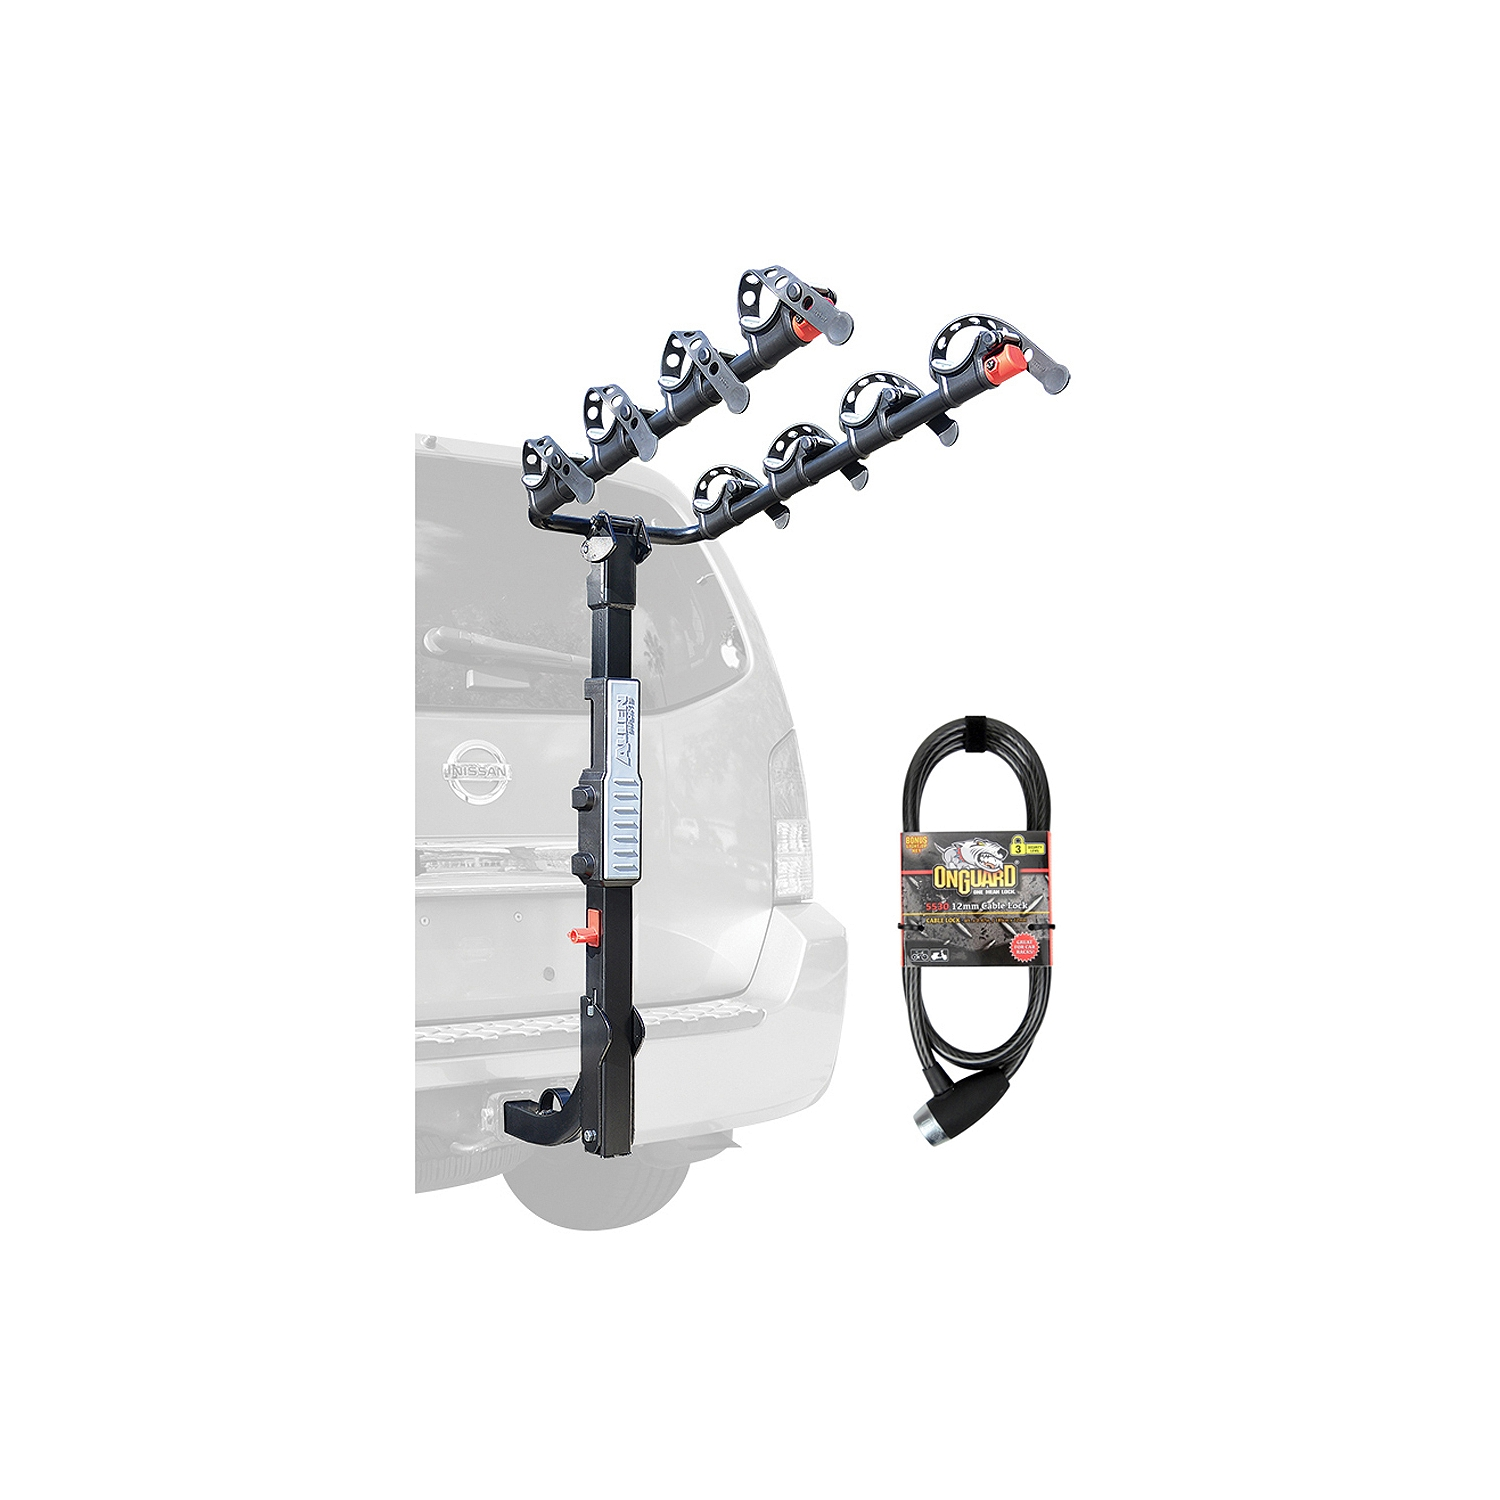 Allen Sports Premier Hitch Mounted 4-Bike Carrier with 6' OnGuard Locking Cable by Allen Sports